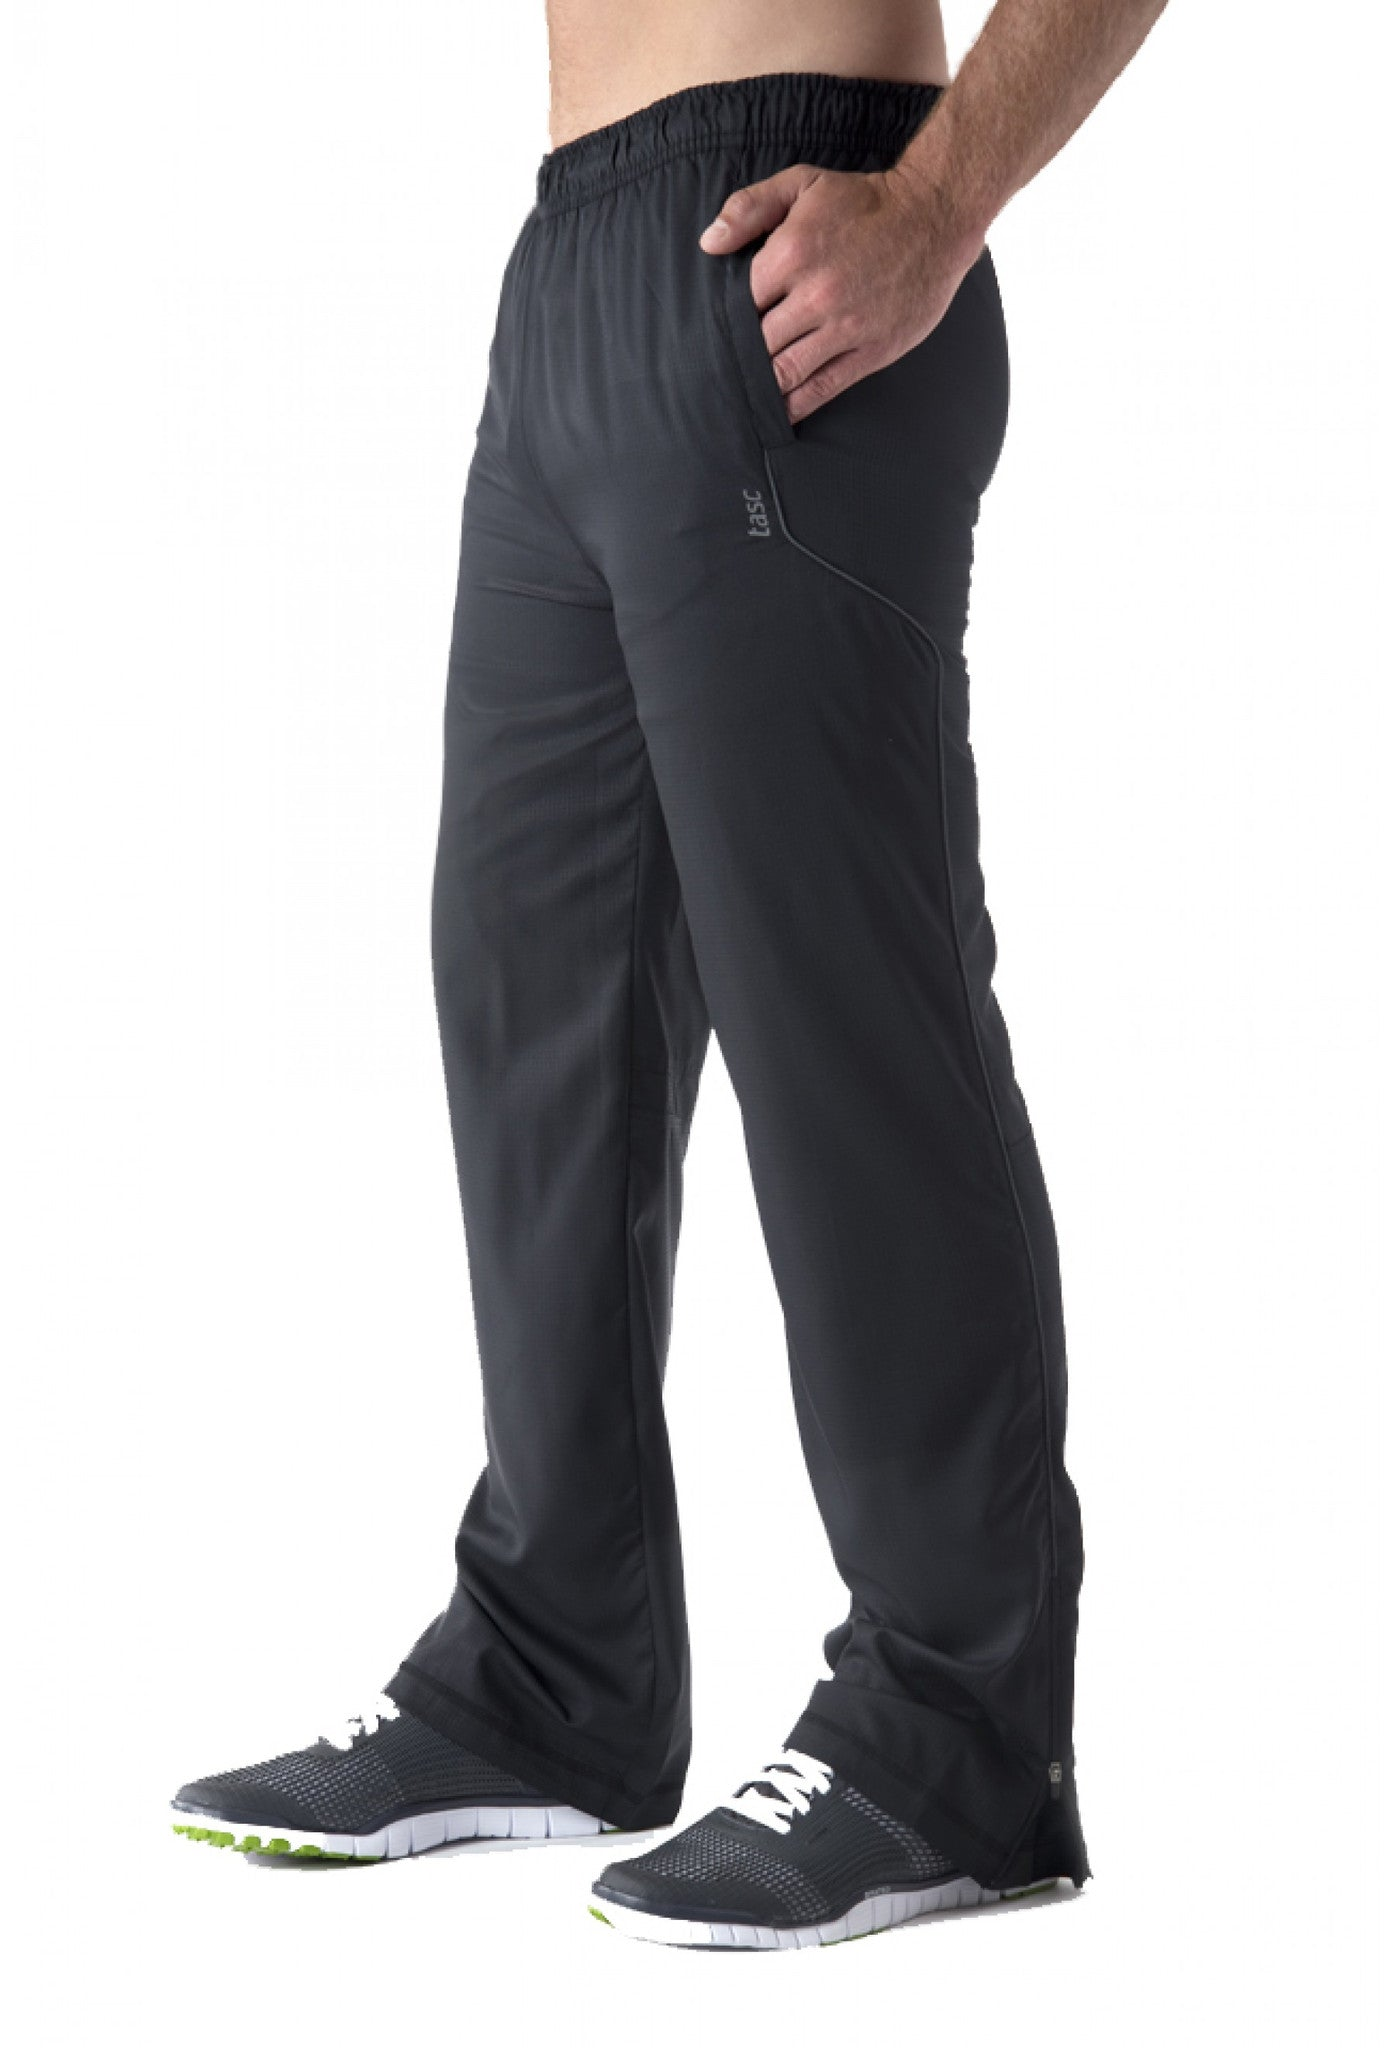 Tasc Performance Greenwich Pant in Black TM360